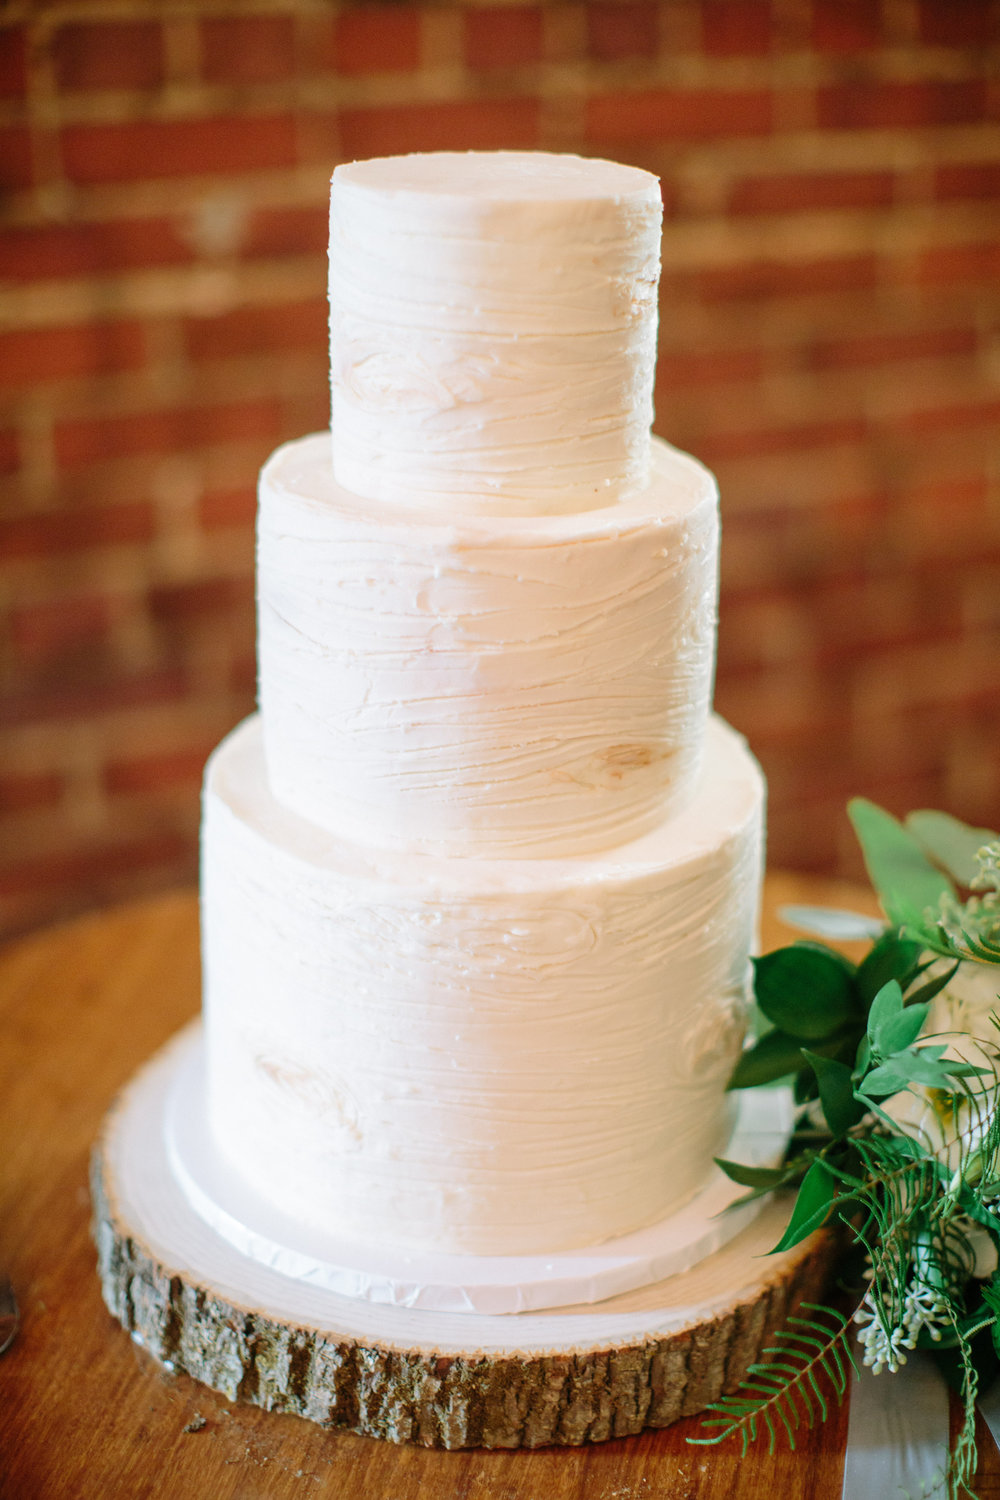 Great-Room_wedding-cake.jpg